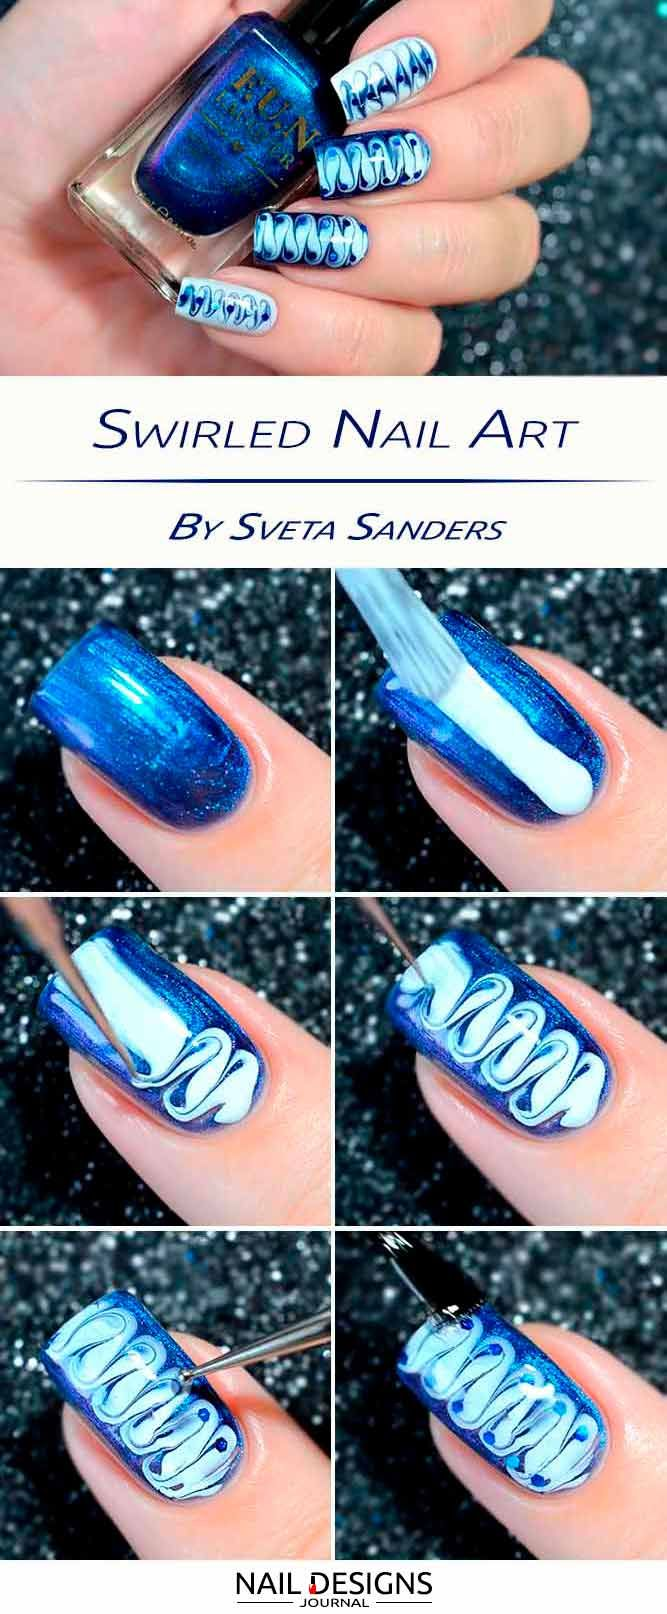 Quick Guide to 15 Stylish Yet Simple | Simple nail designs, Stylish ...